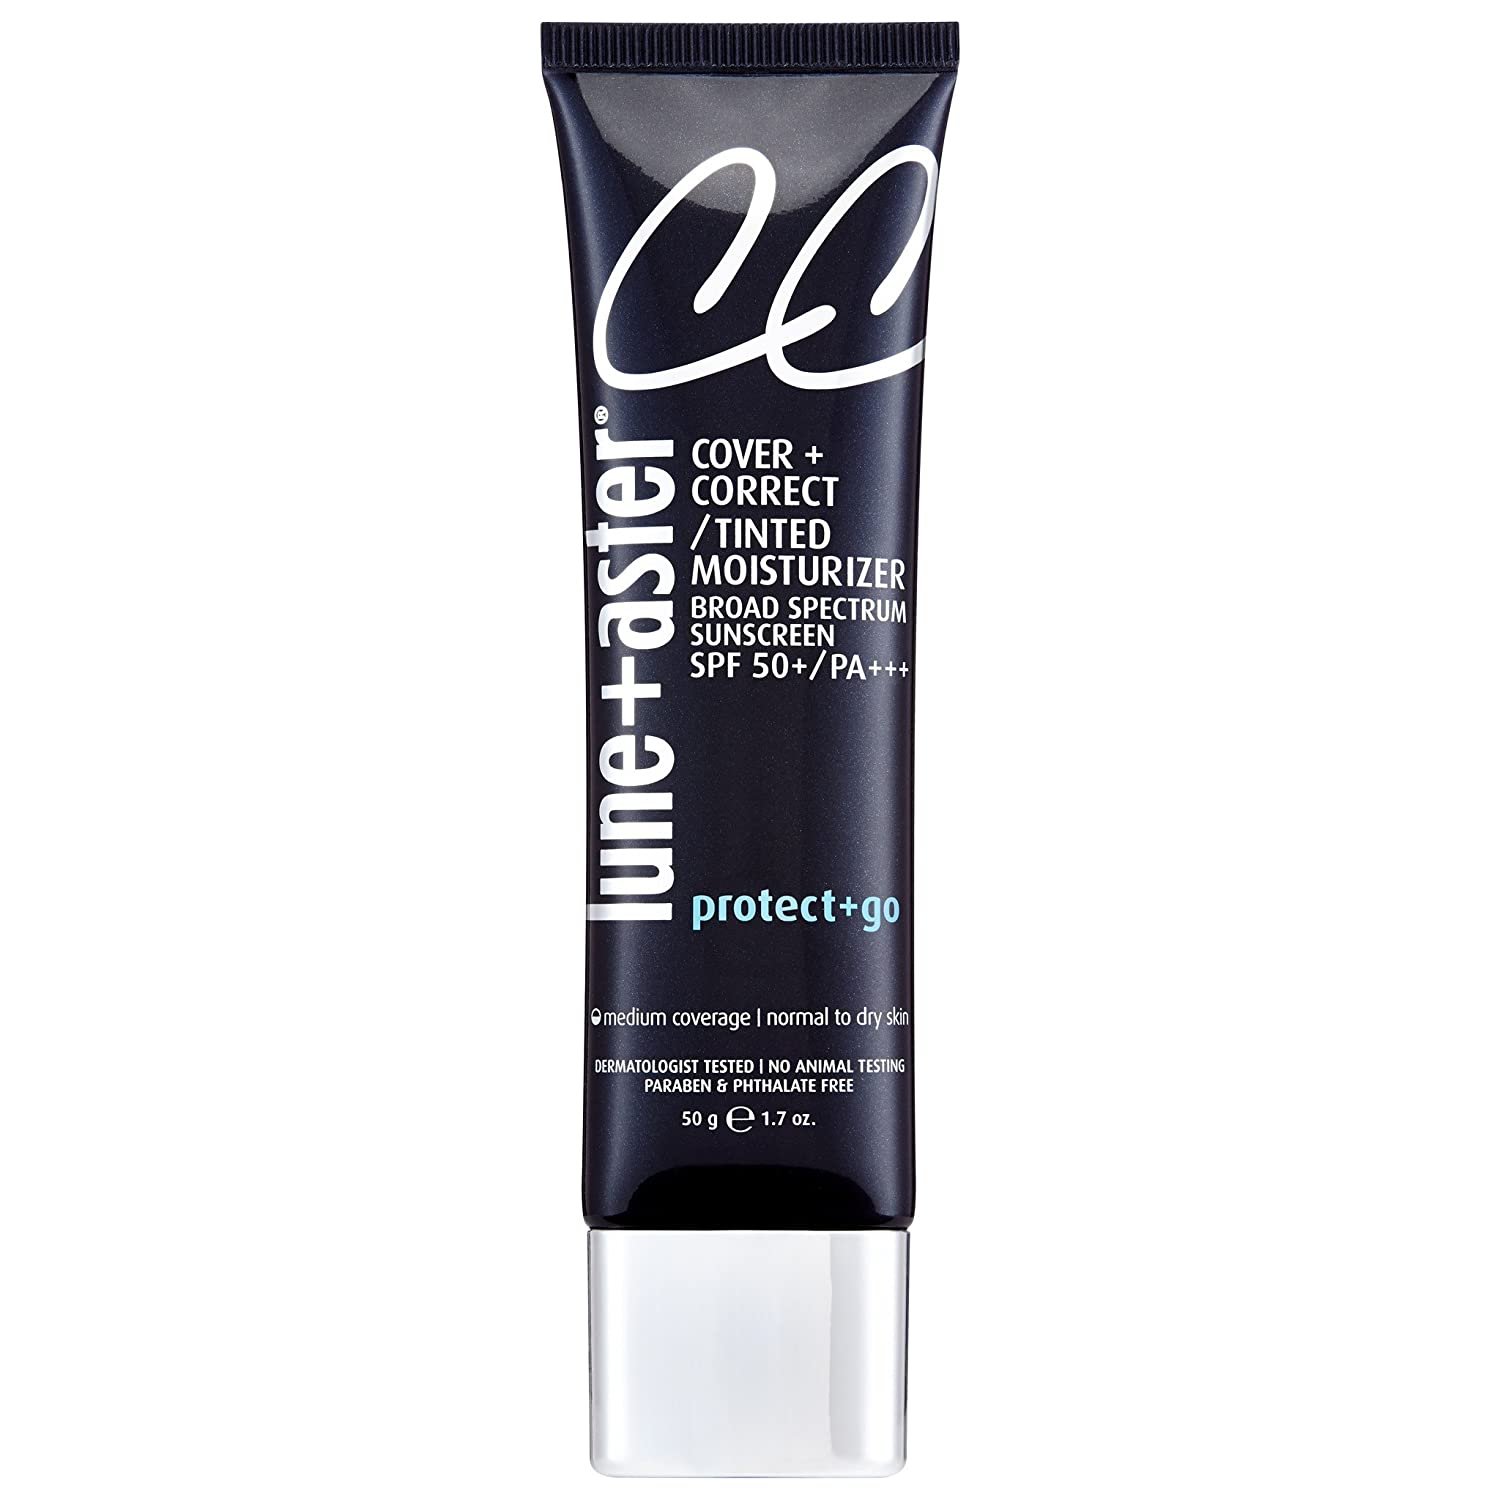 Lune+Aster Cc Cream Spf 50/Pa+++, Shade=Medium by Lune+Aster